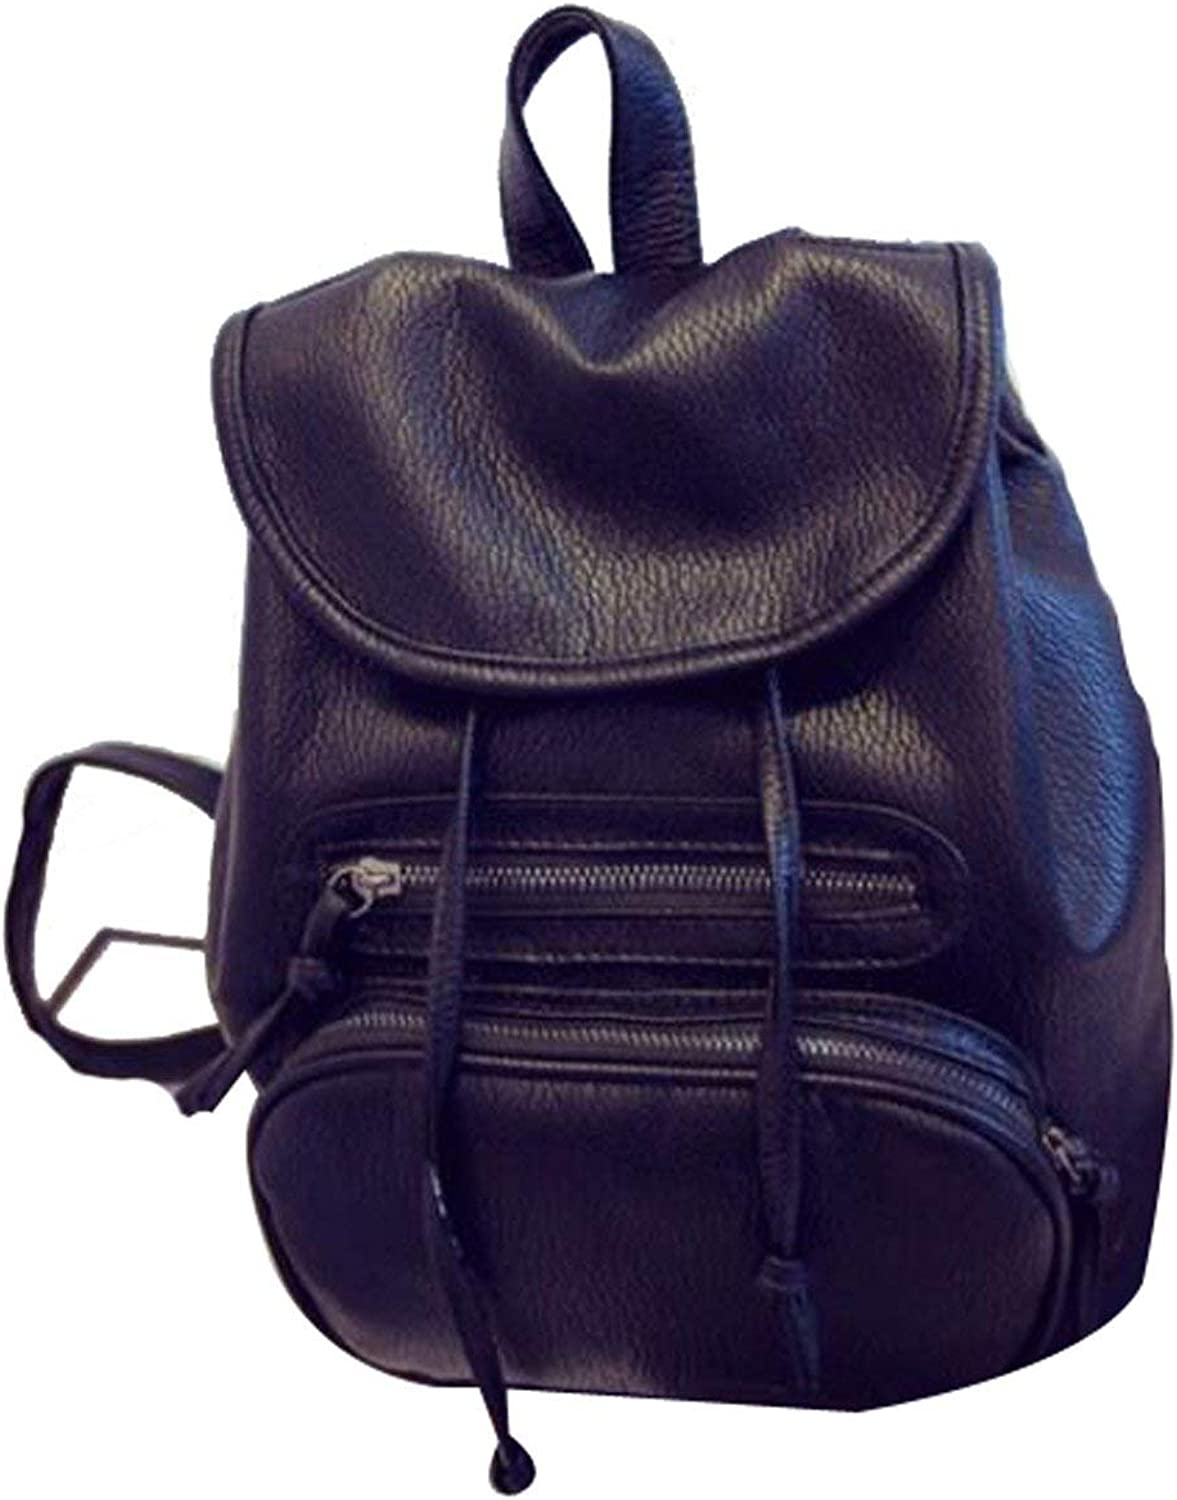 Kin Women Fashion PU Leather Shoulder Bag College School Backpack with Cap String Black Casual Backpack